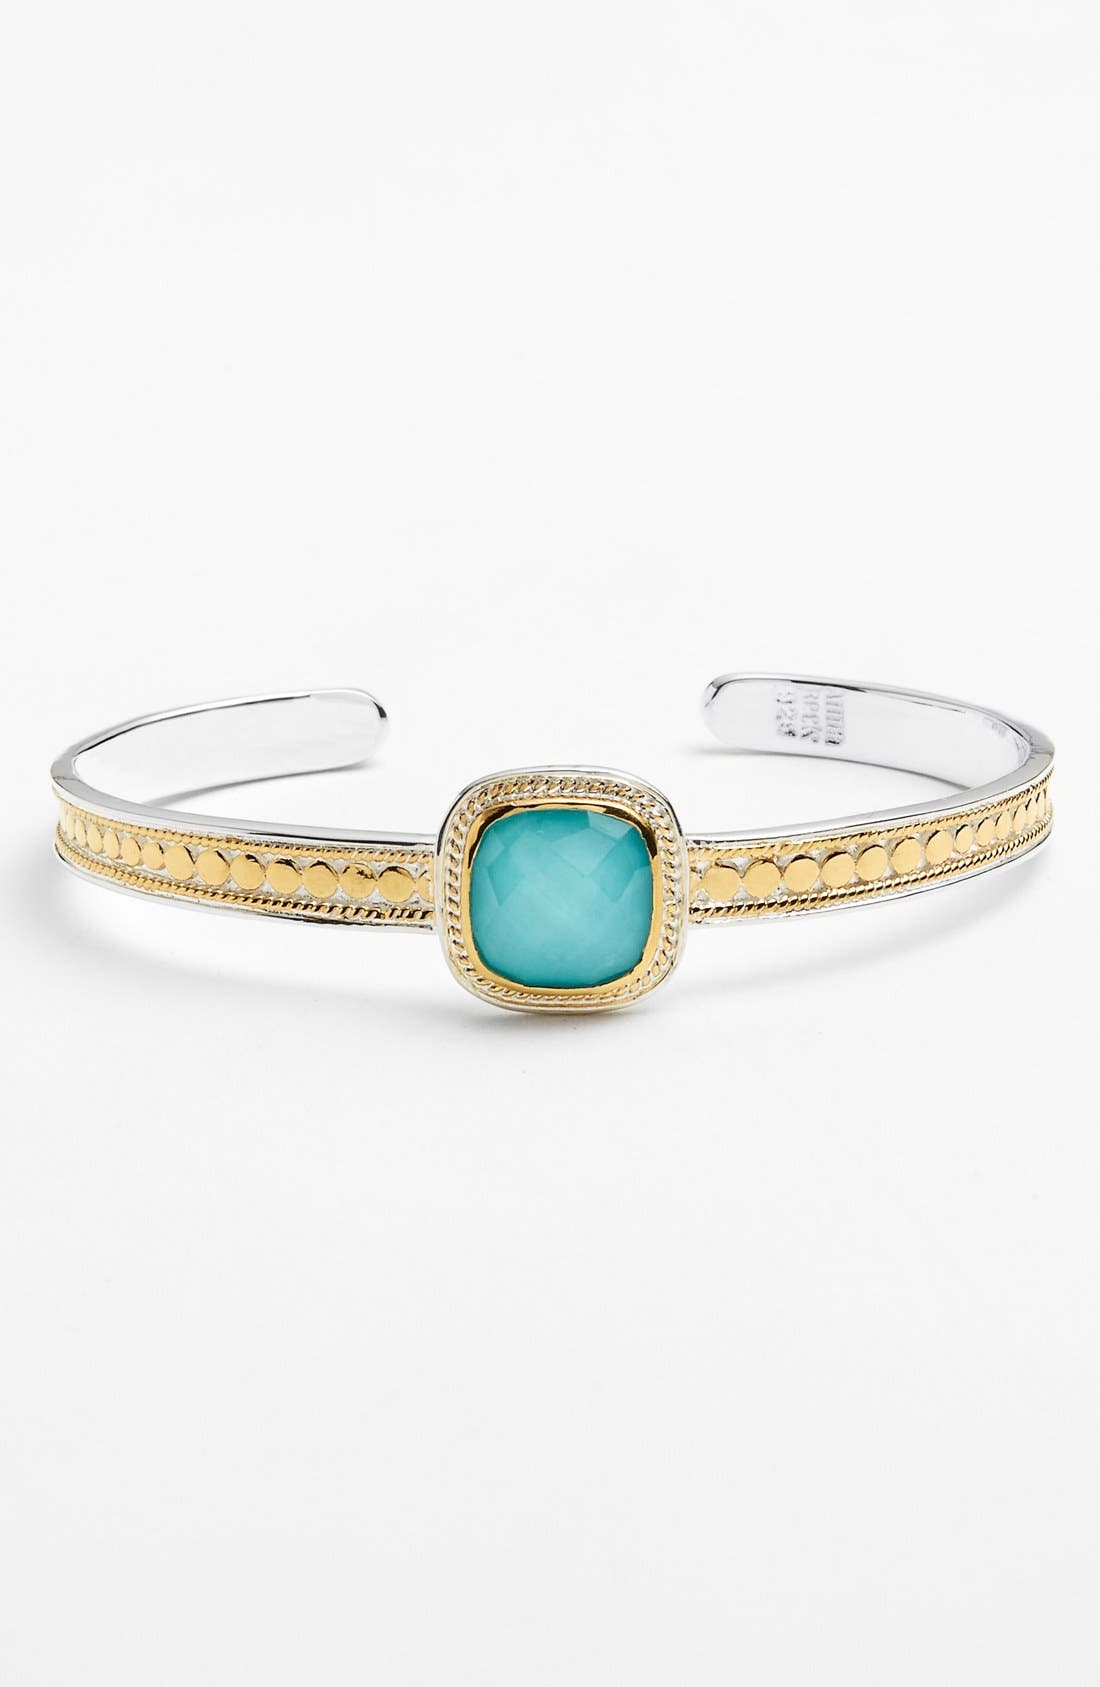 Alternate Image 1 Selected - Anna Beck 'Gili' Turquoise Skinny Cuff